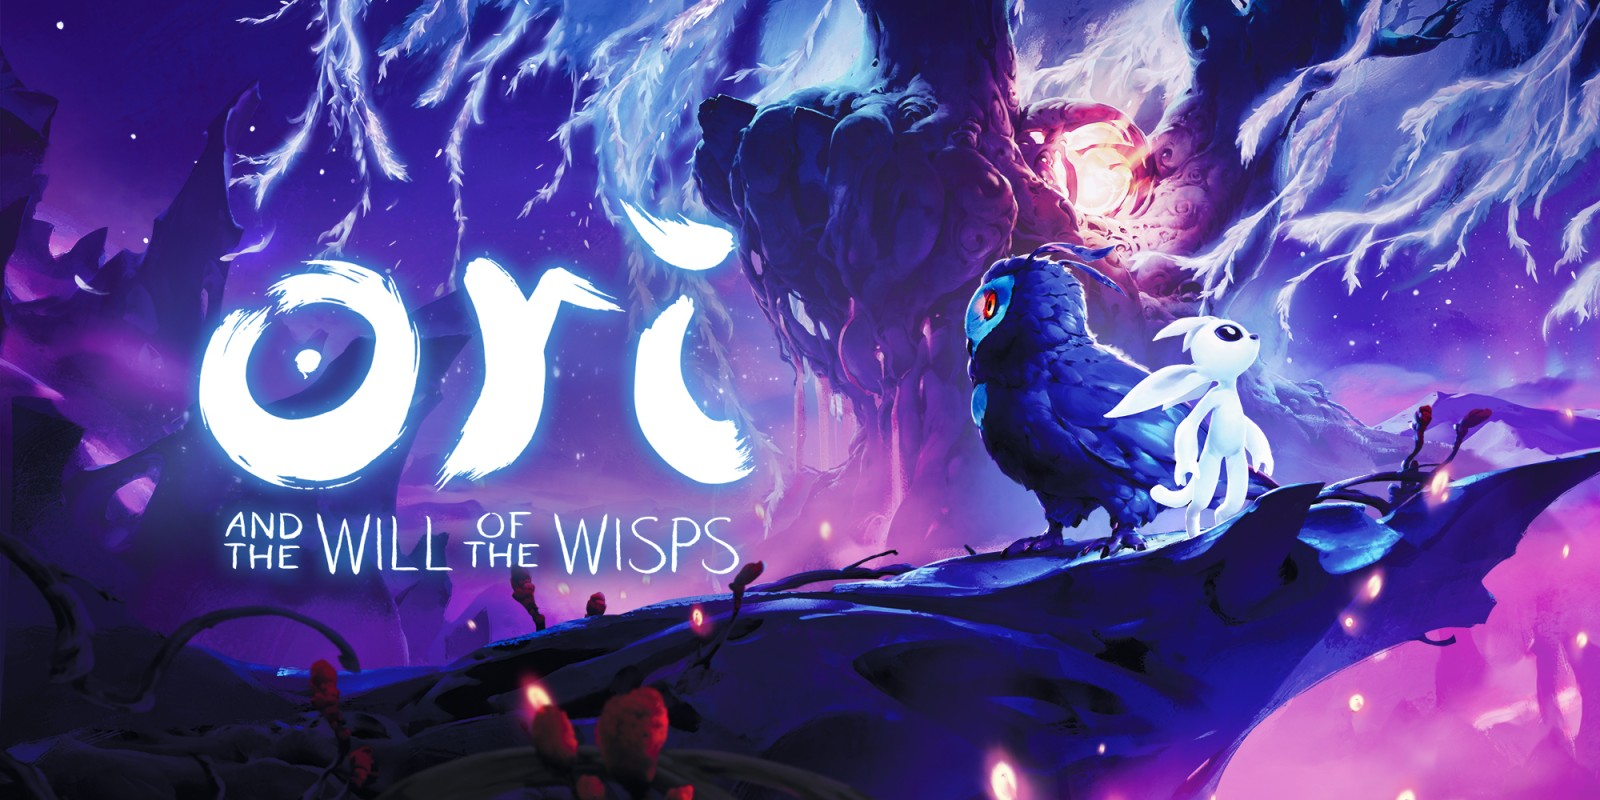 https://switchplayer.net/wp-content/uploads/2020/09/Ori-and-the-Will-of-the-Wisps-banner.jpg